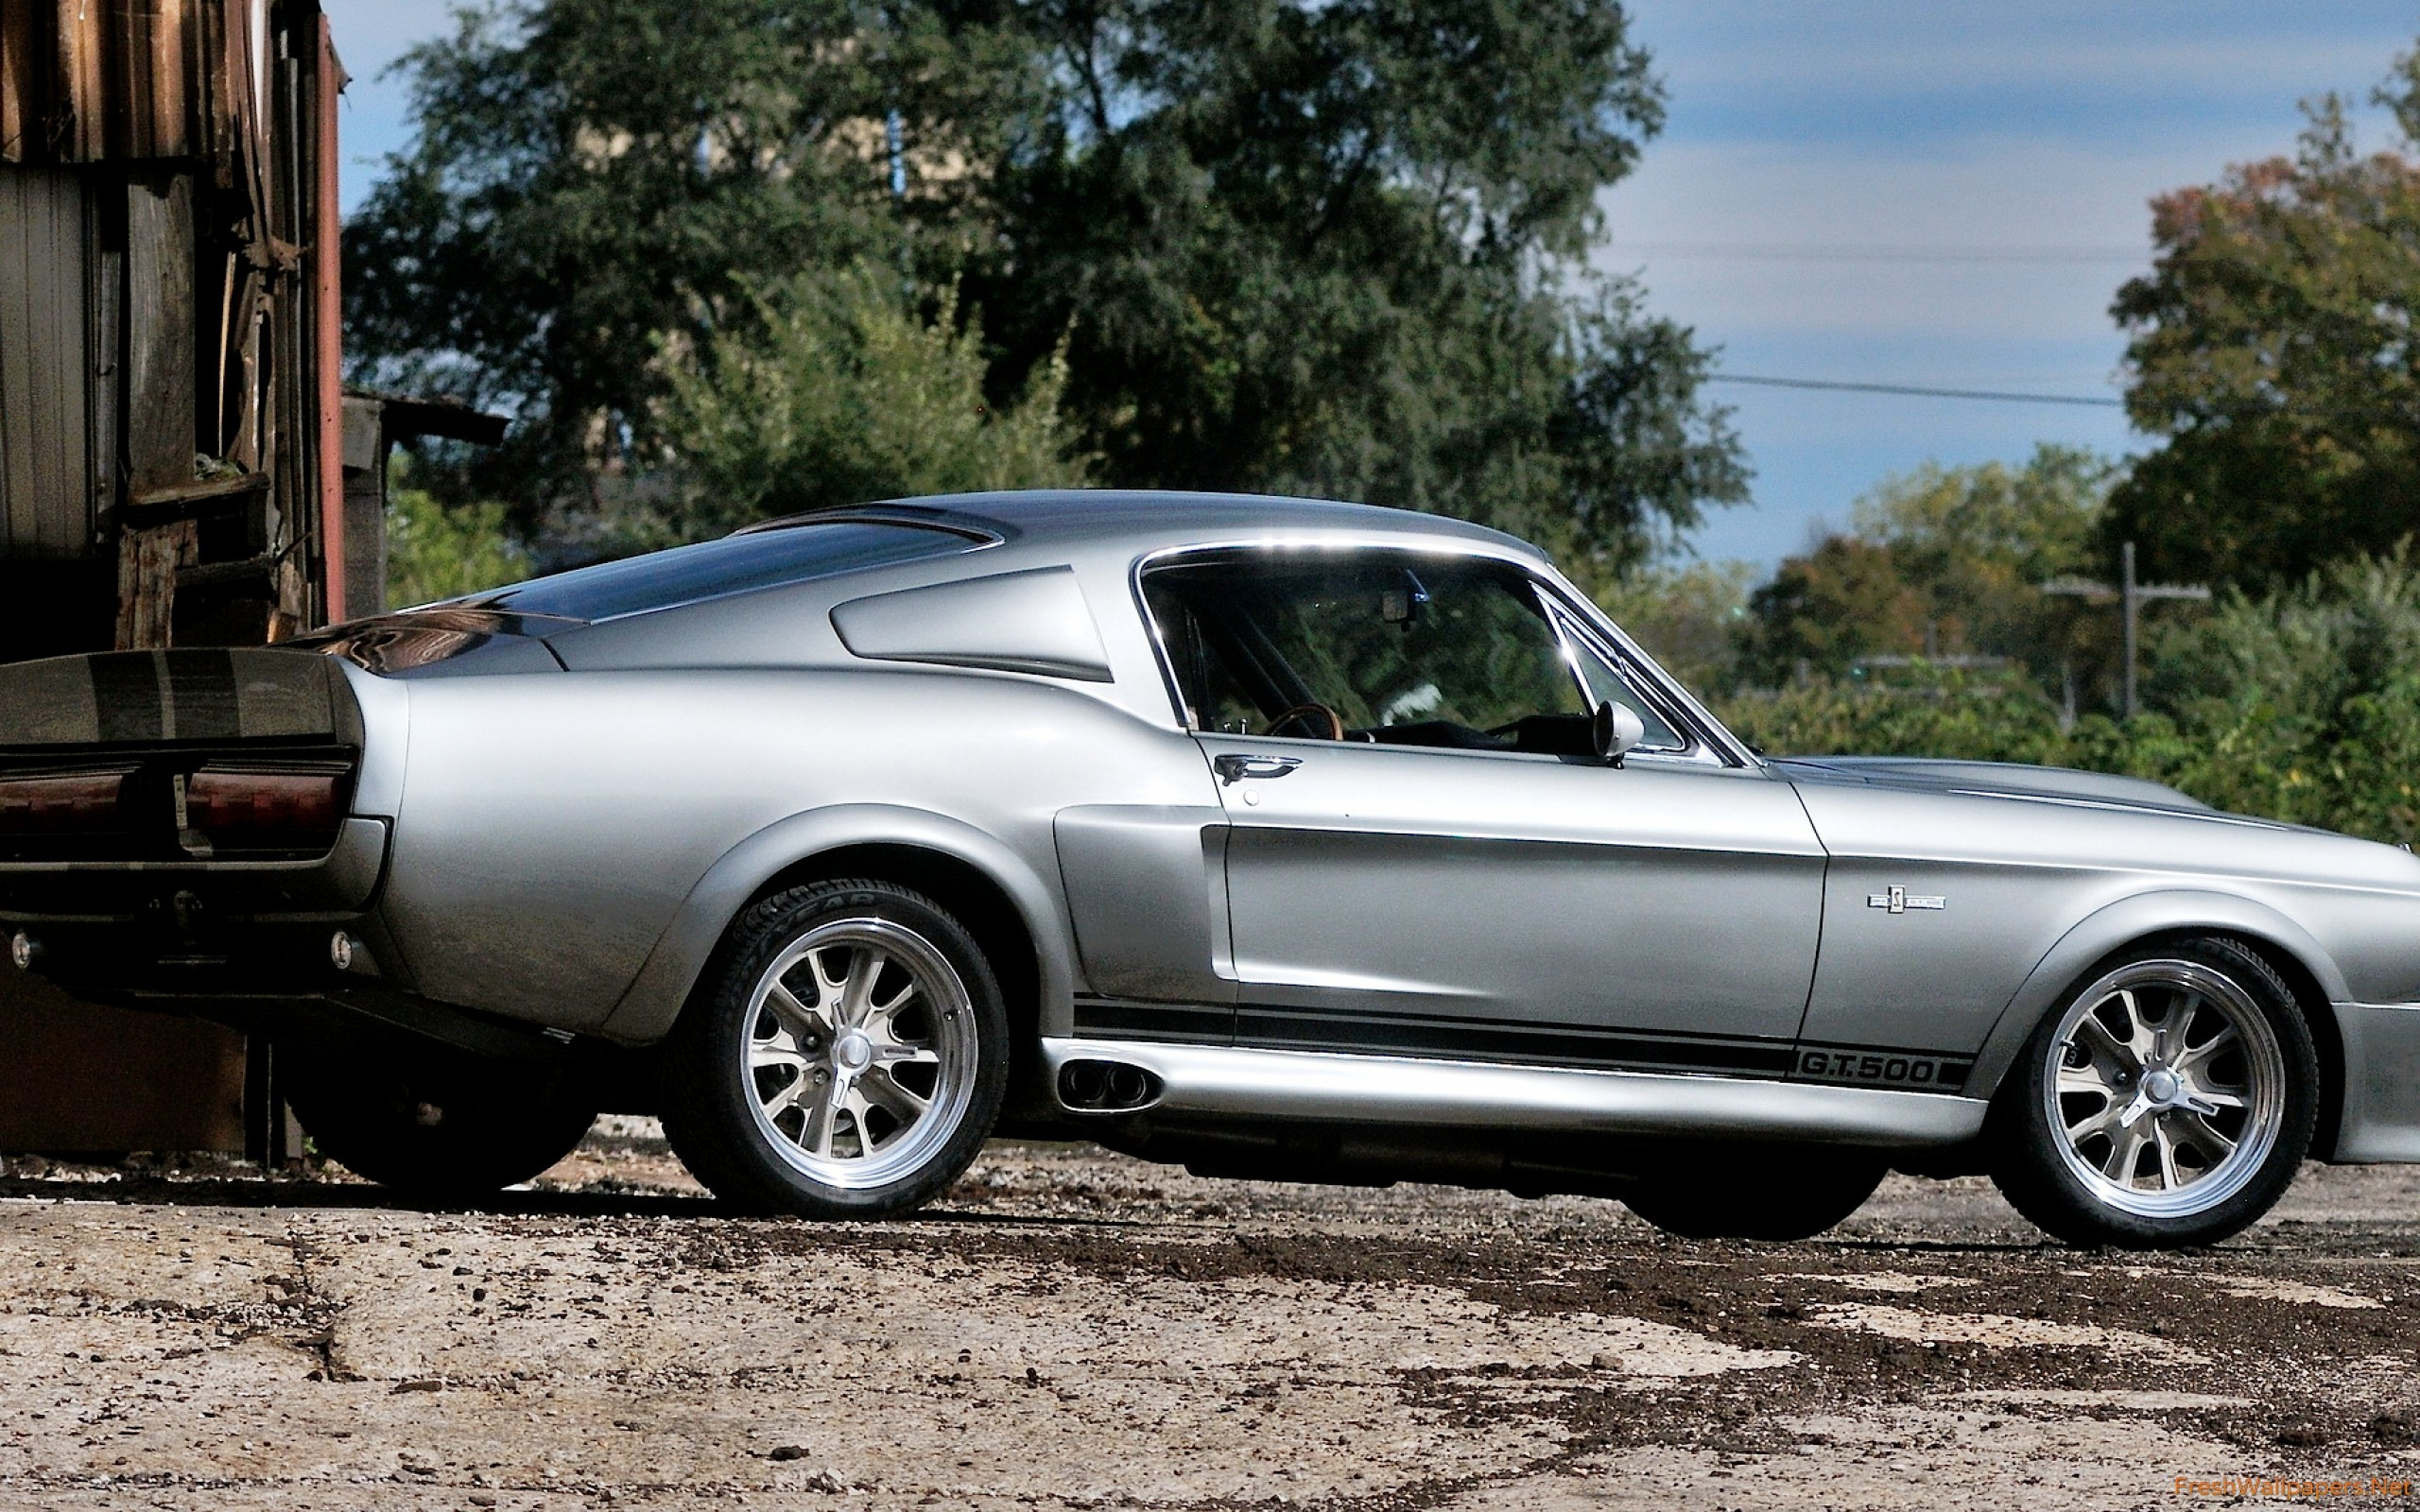 Res: 2560x1600, 1967 Ford Mustang GT500 wallpaper